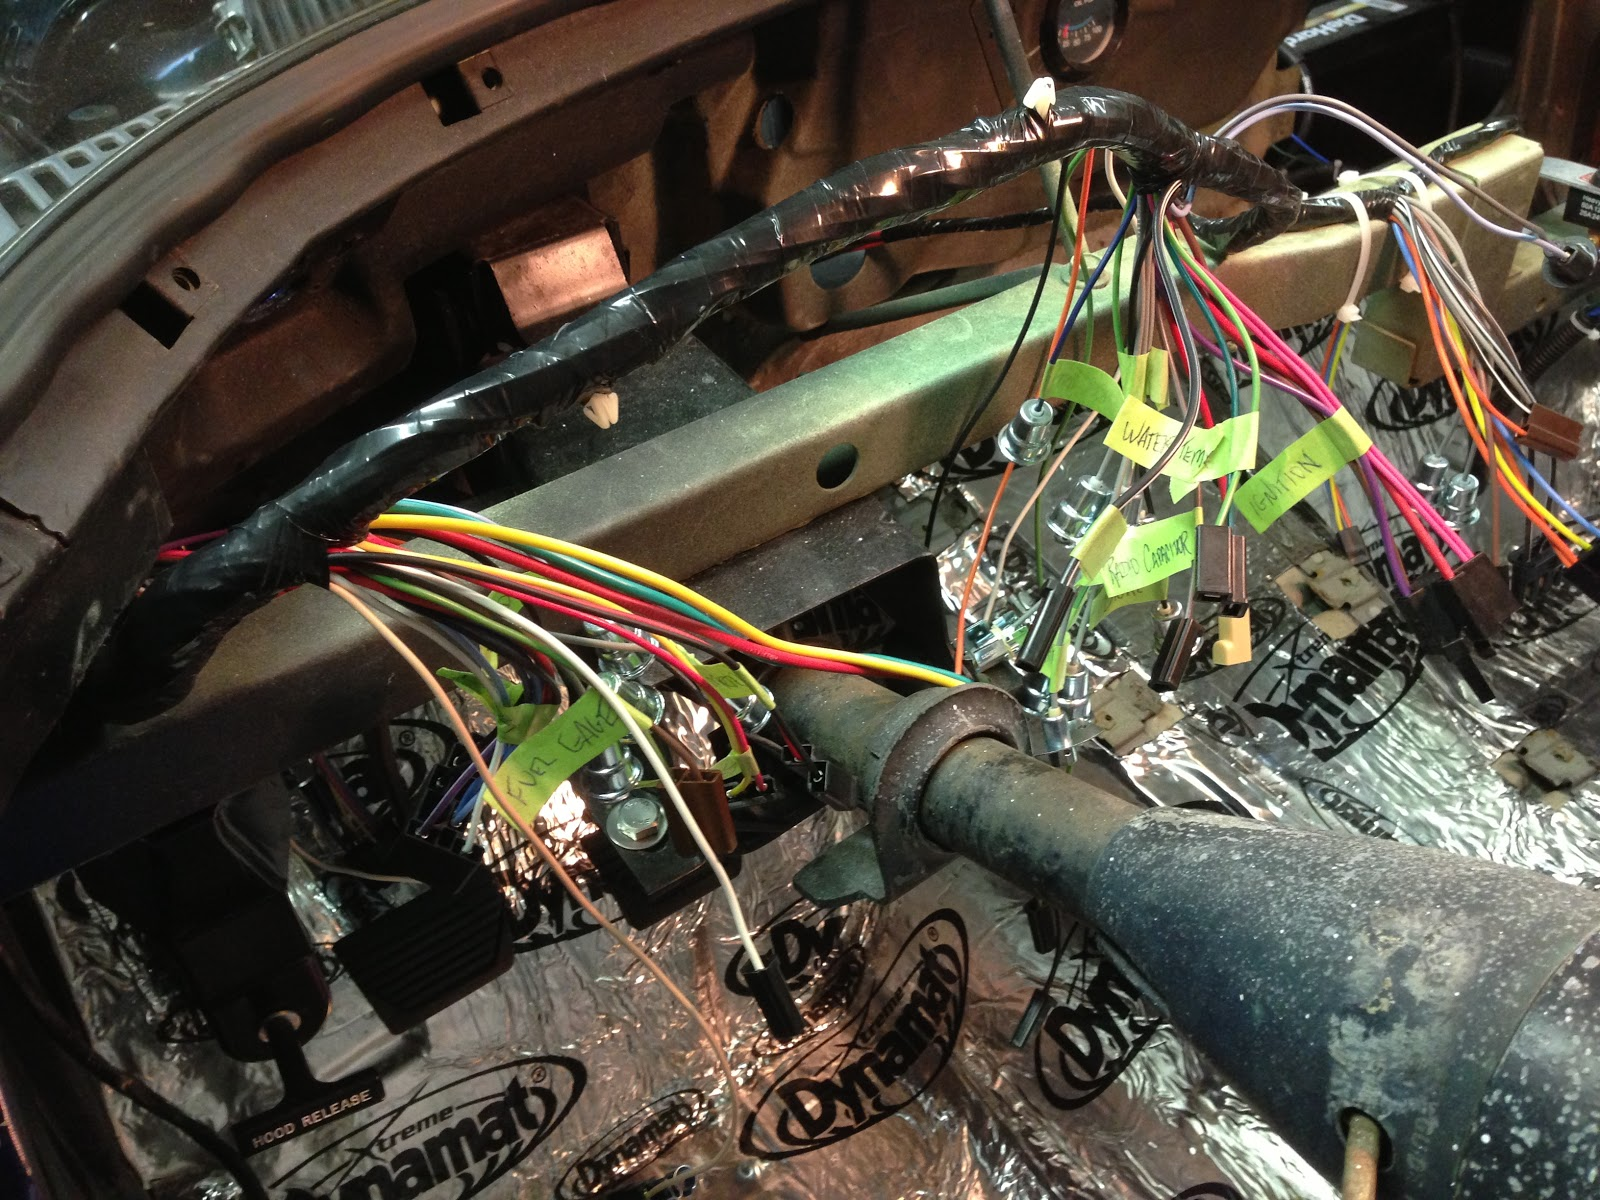 medium resolution of the dash wiring harness includes the fuse box which is authentic right down to the glass fuses